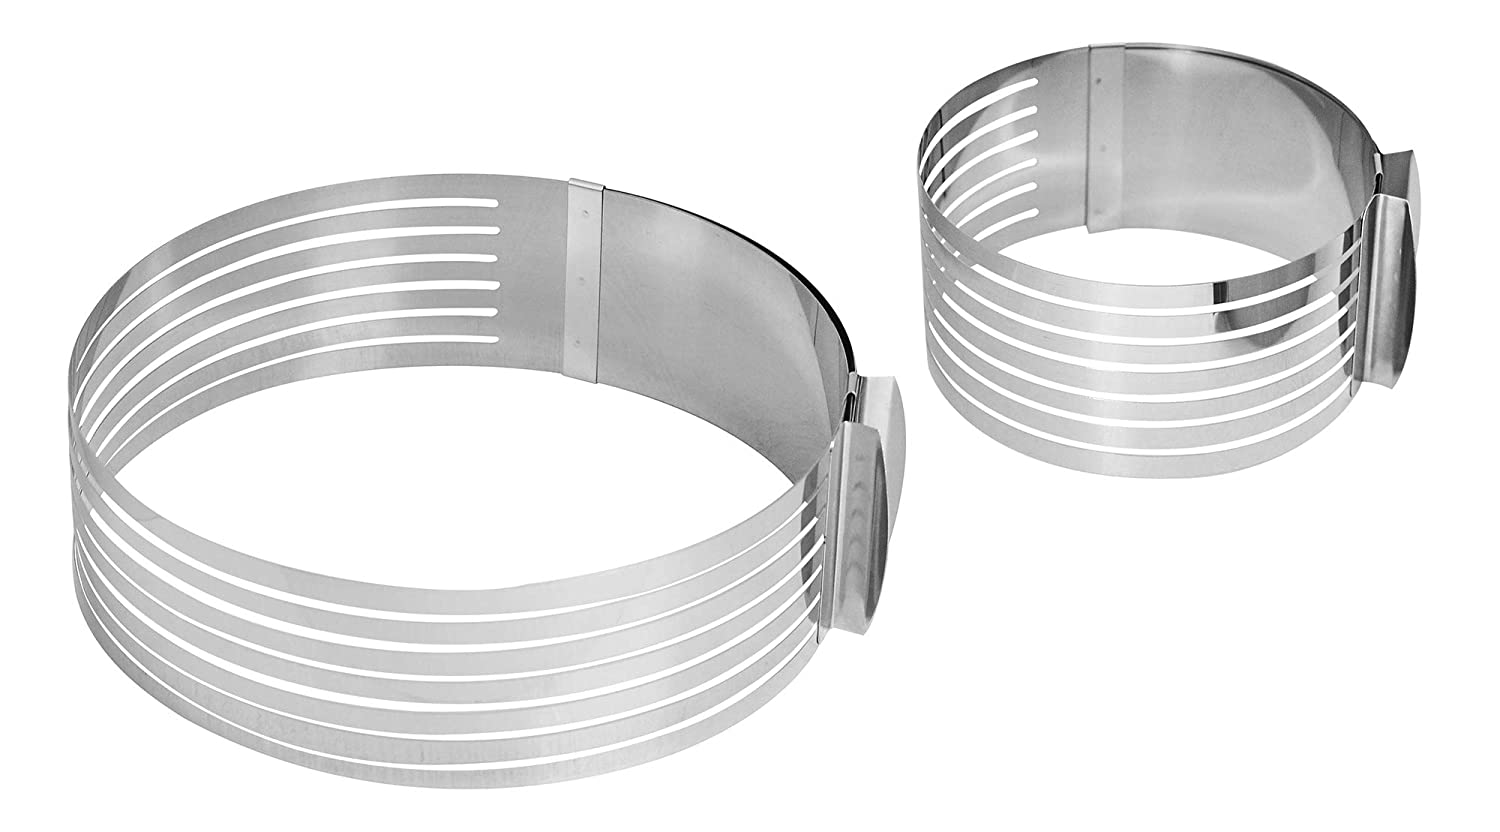 "NewlineNY Stainless Steel 2 Pieces Adjustable Multilayer Circular Molding Plating Forming Round Cake Rings, Set of 2 (10 to 12"" + 6 to 8"" x 3.2"" H)"